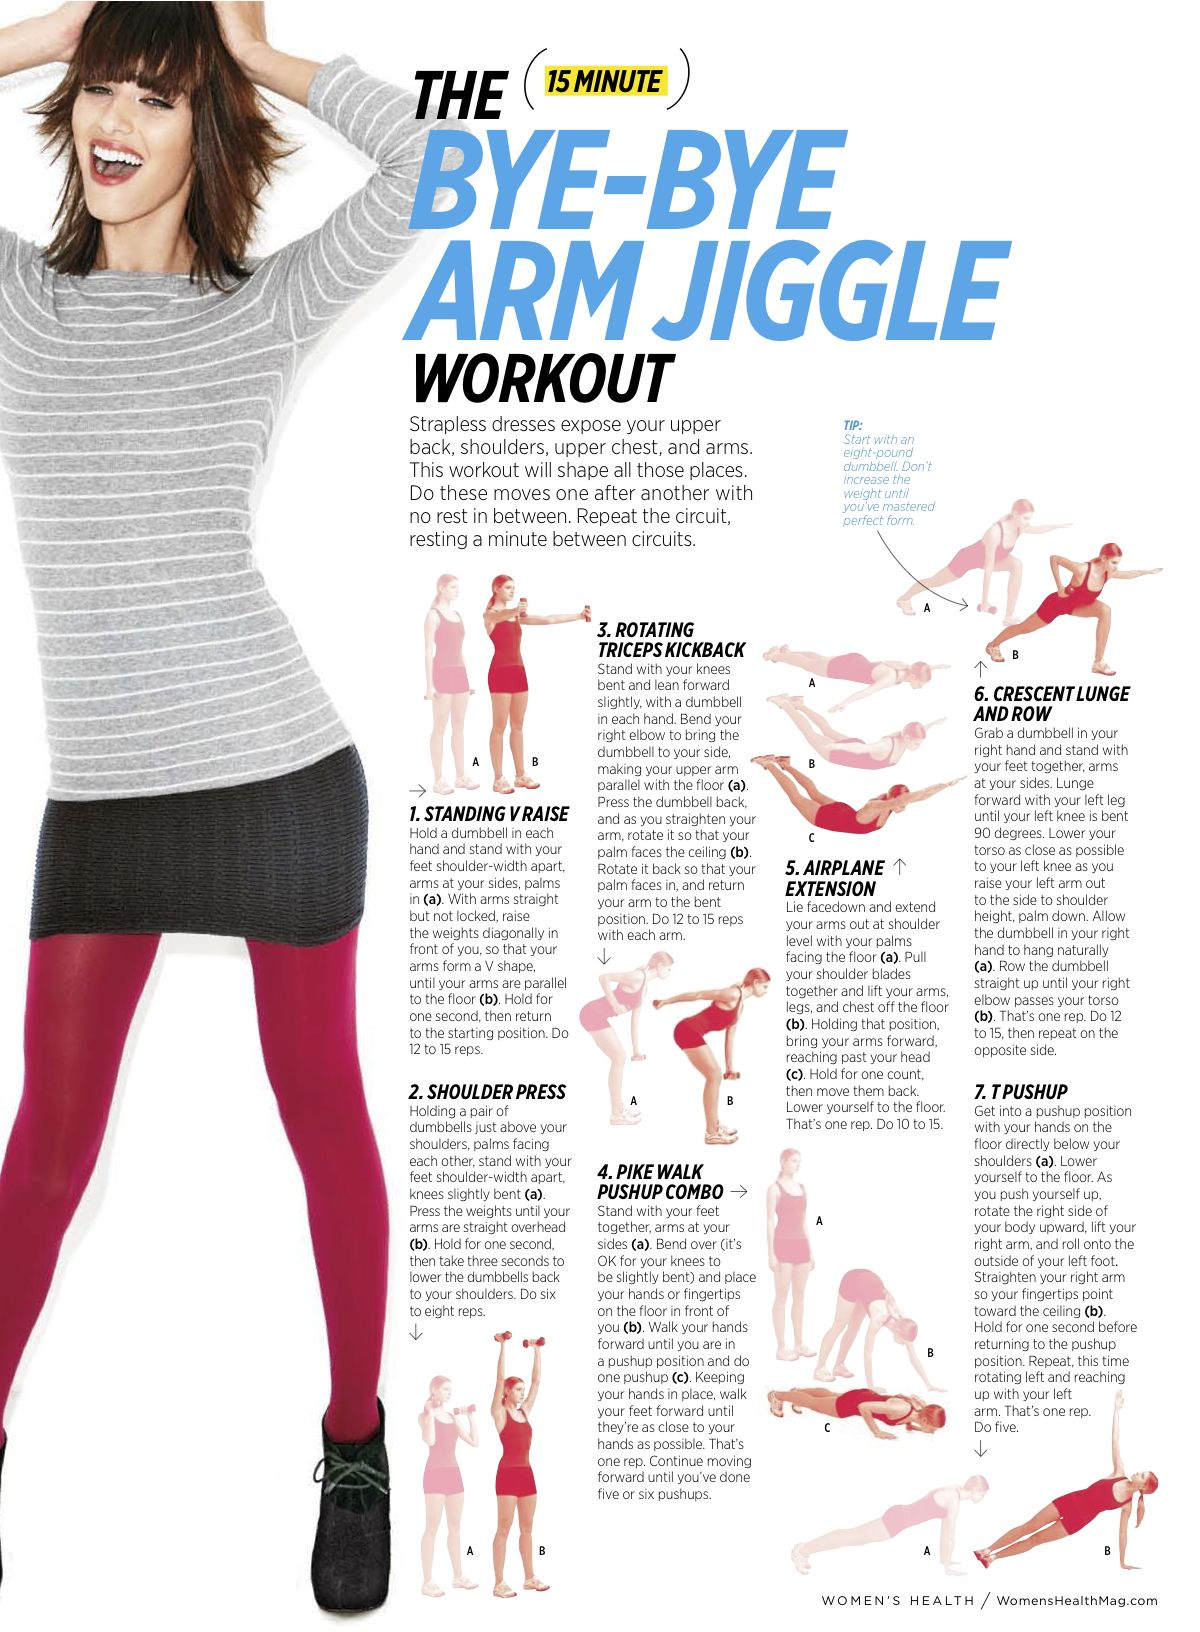 The (15 Minute) Bye-Bye Arm Jiggle Workout